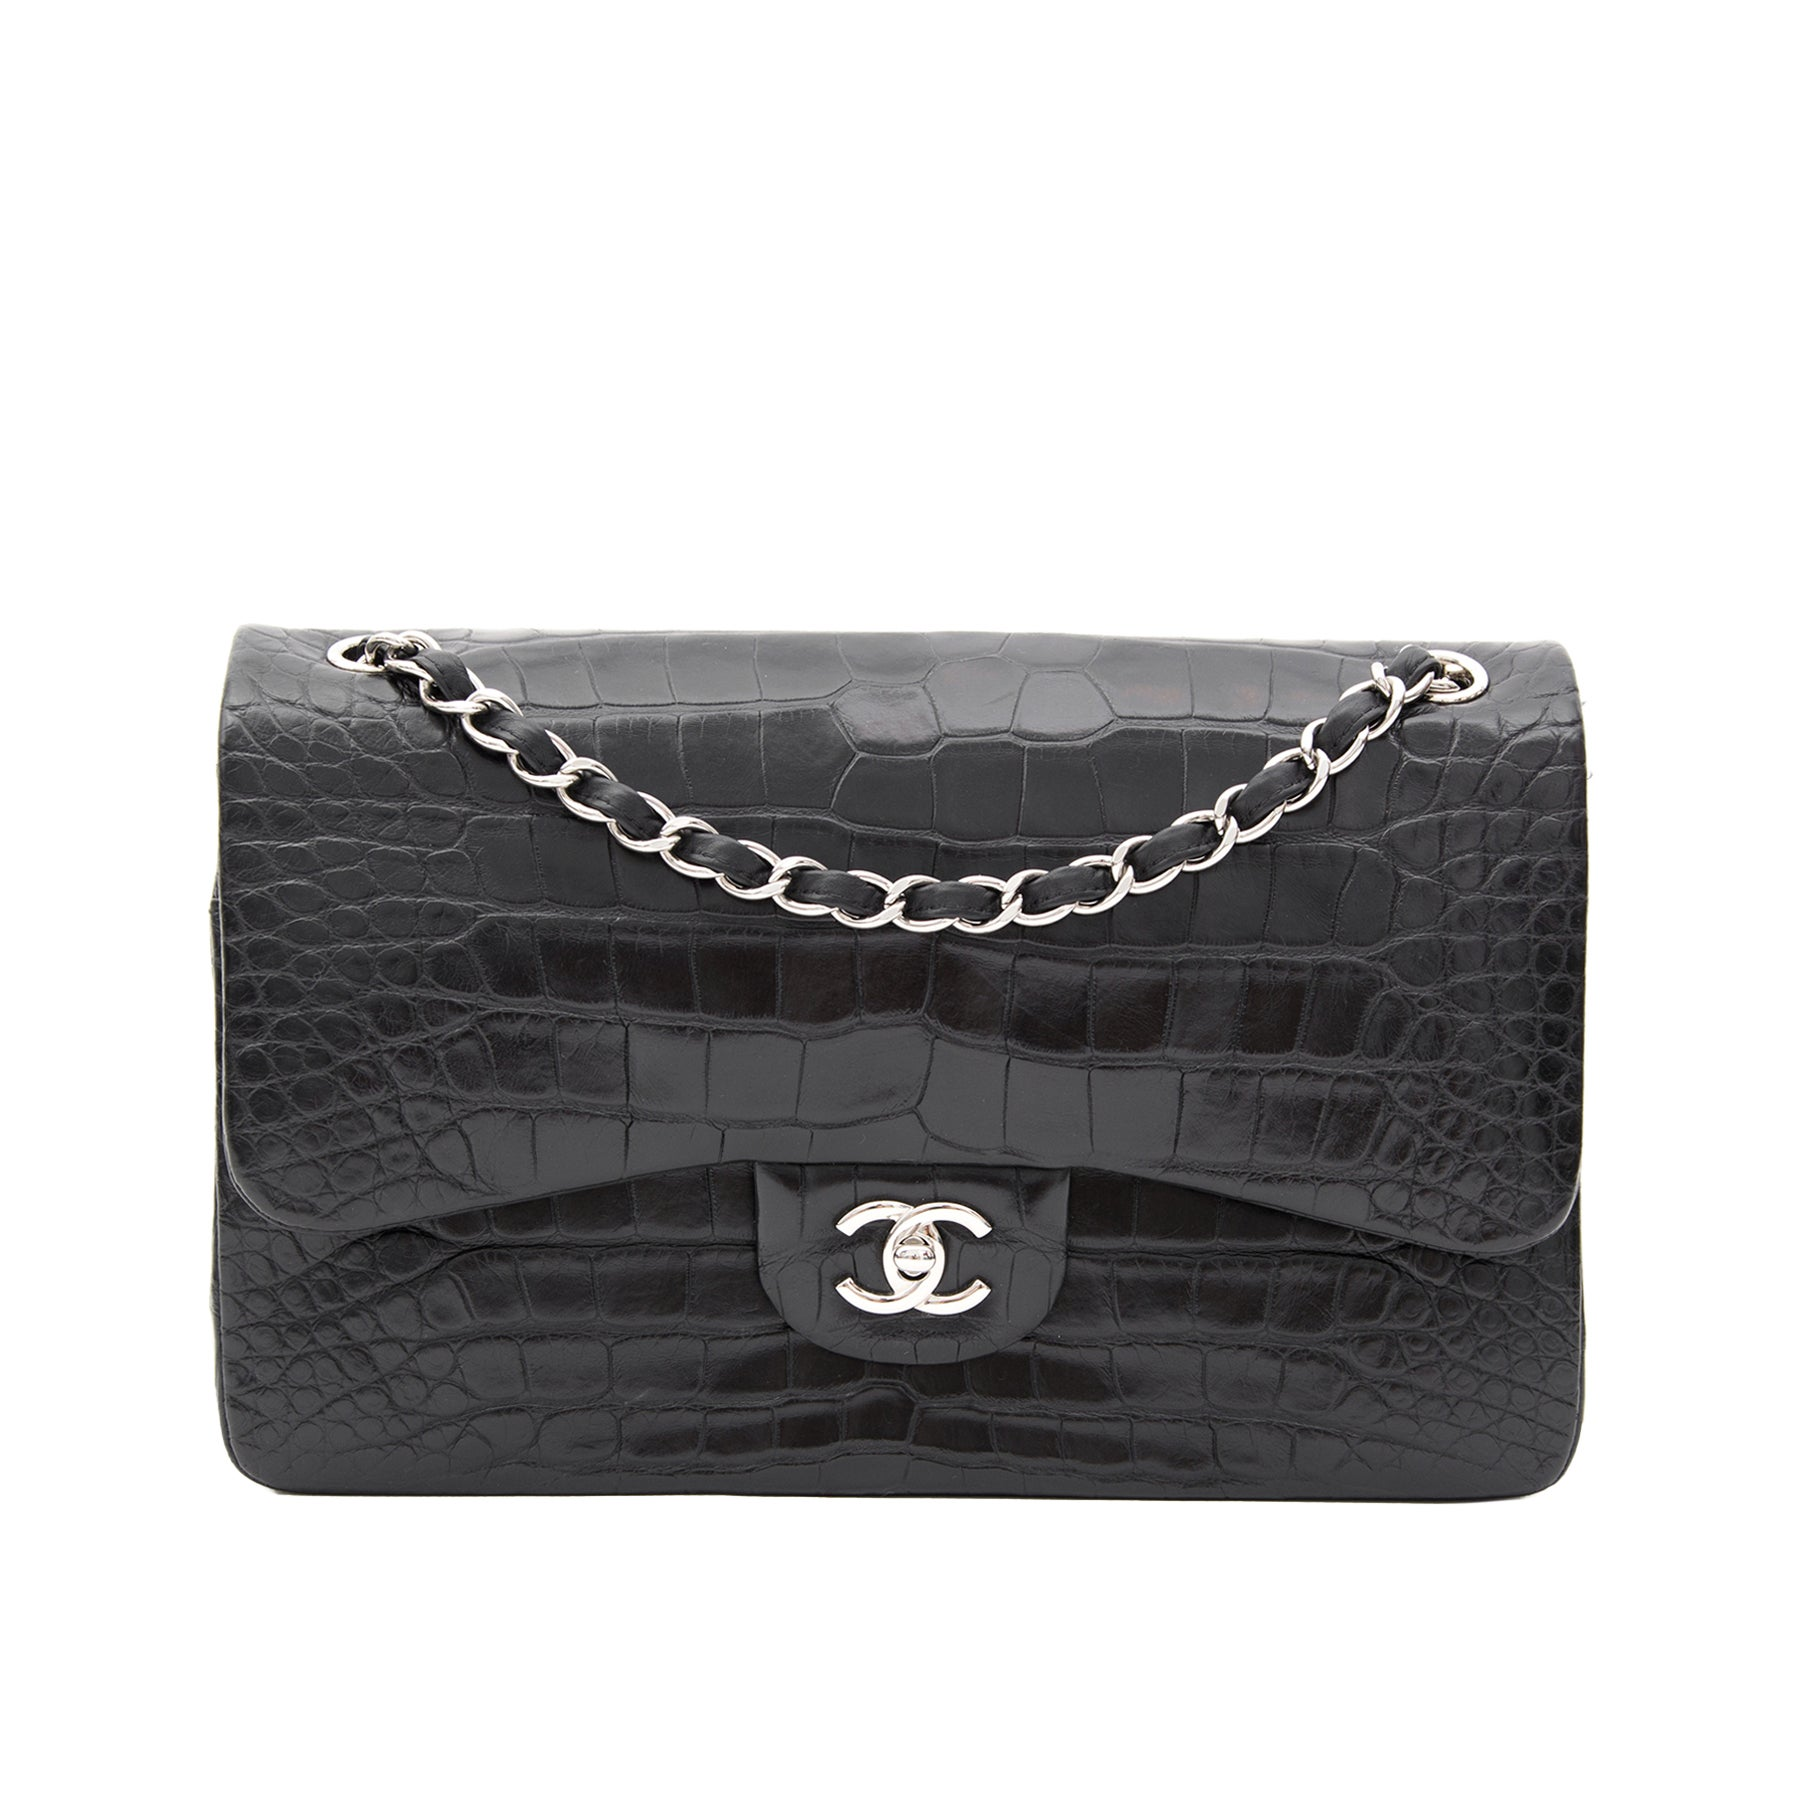 1a738875d9c0 Rare Chanel Alligator Jumbo Double Flap Black For Sale at 1stdibs